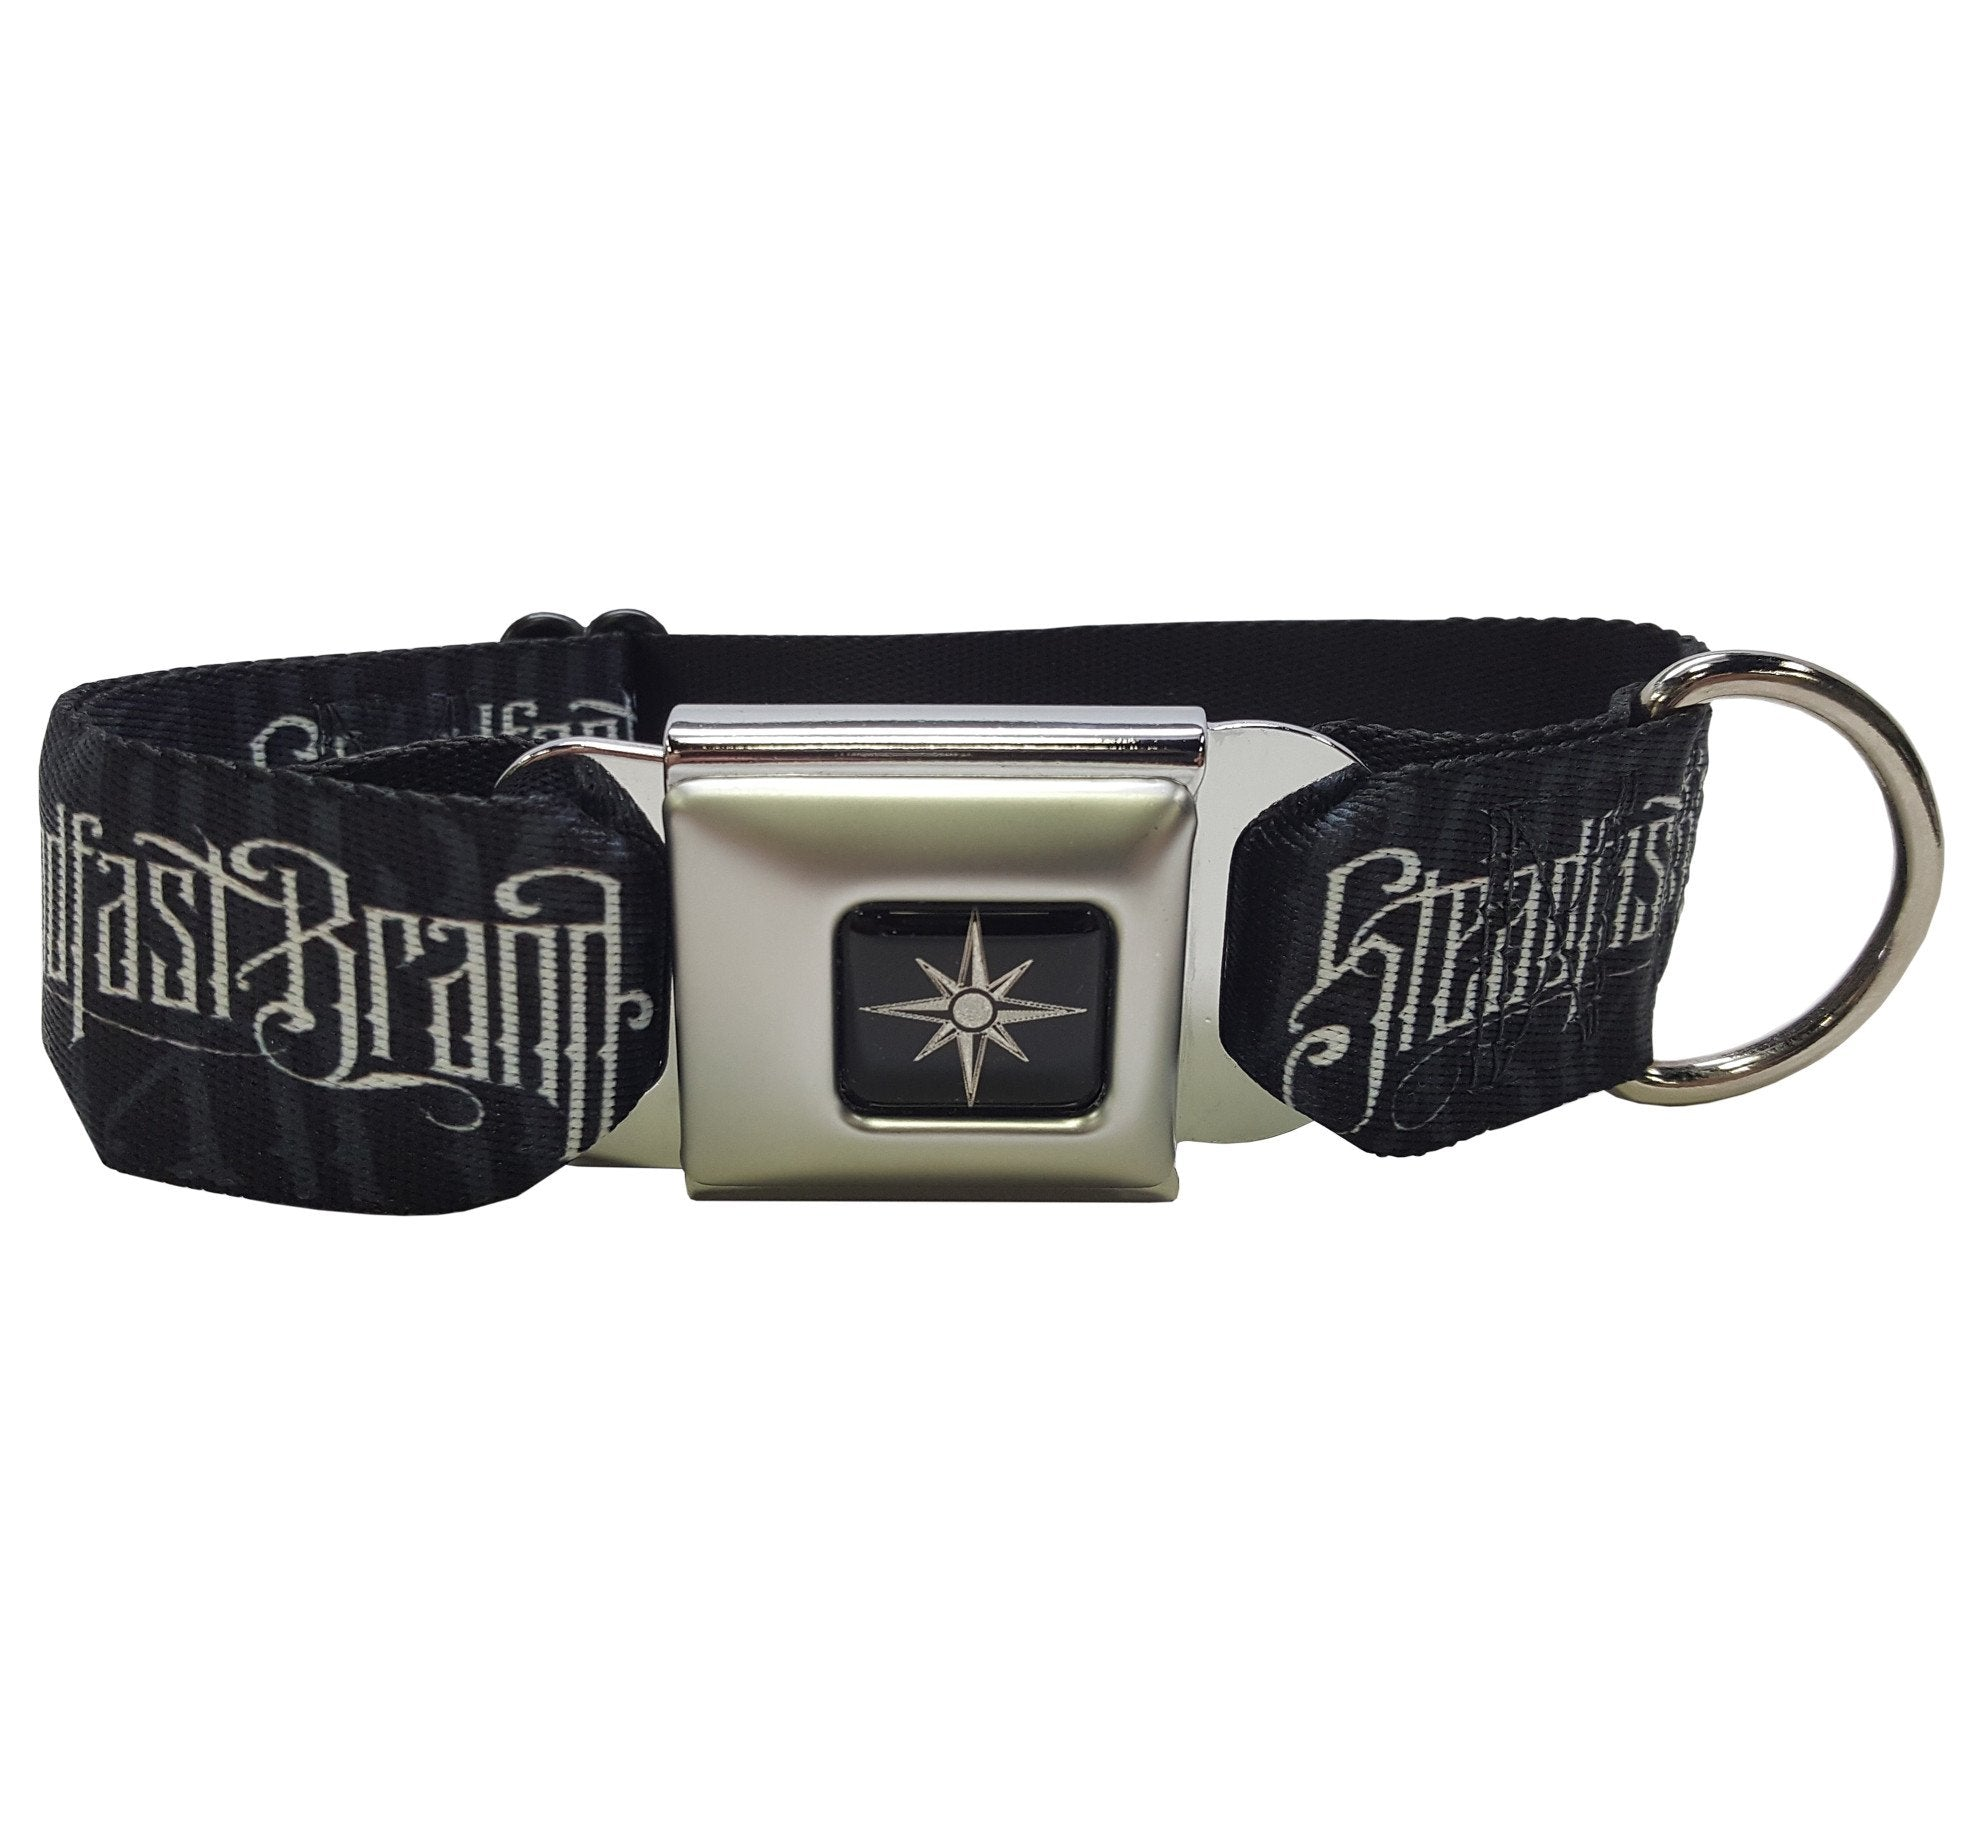 Steadfast Noir Logo Dog Collar (Black)